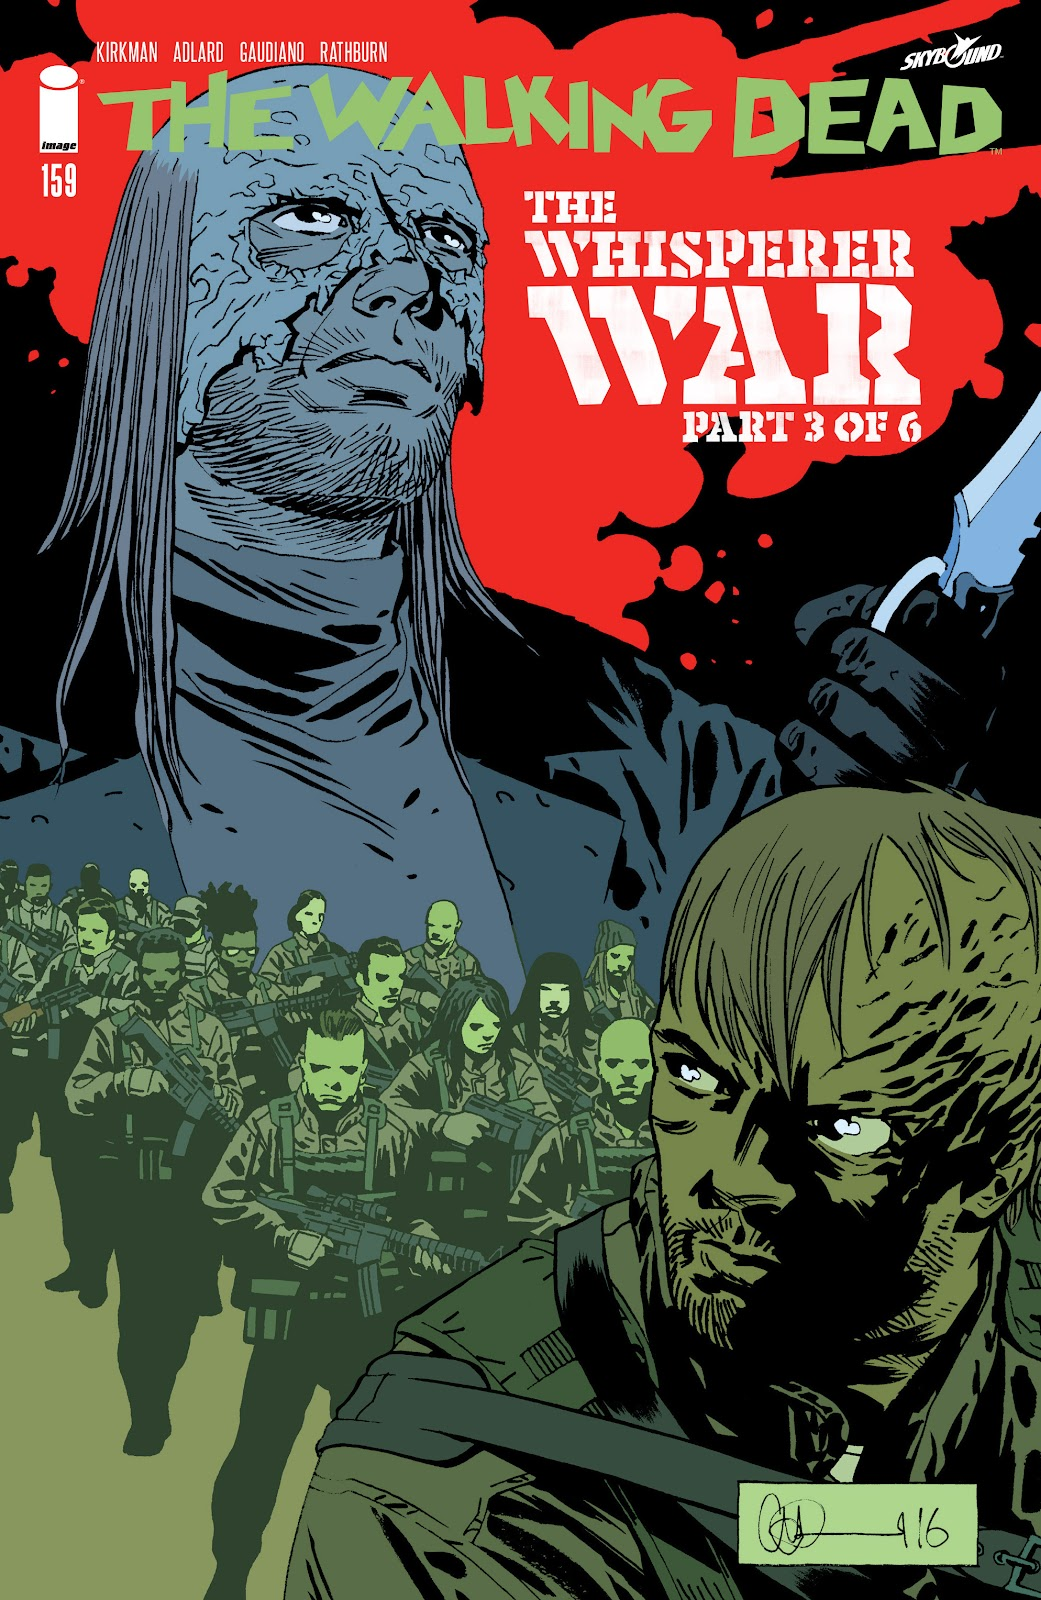 The Walking Dead 159 Page 1